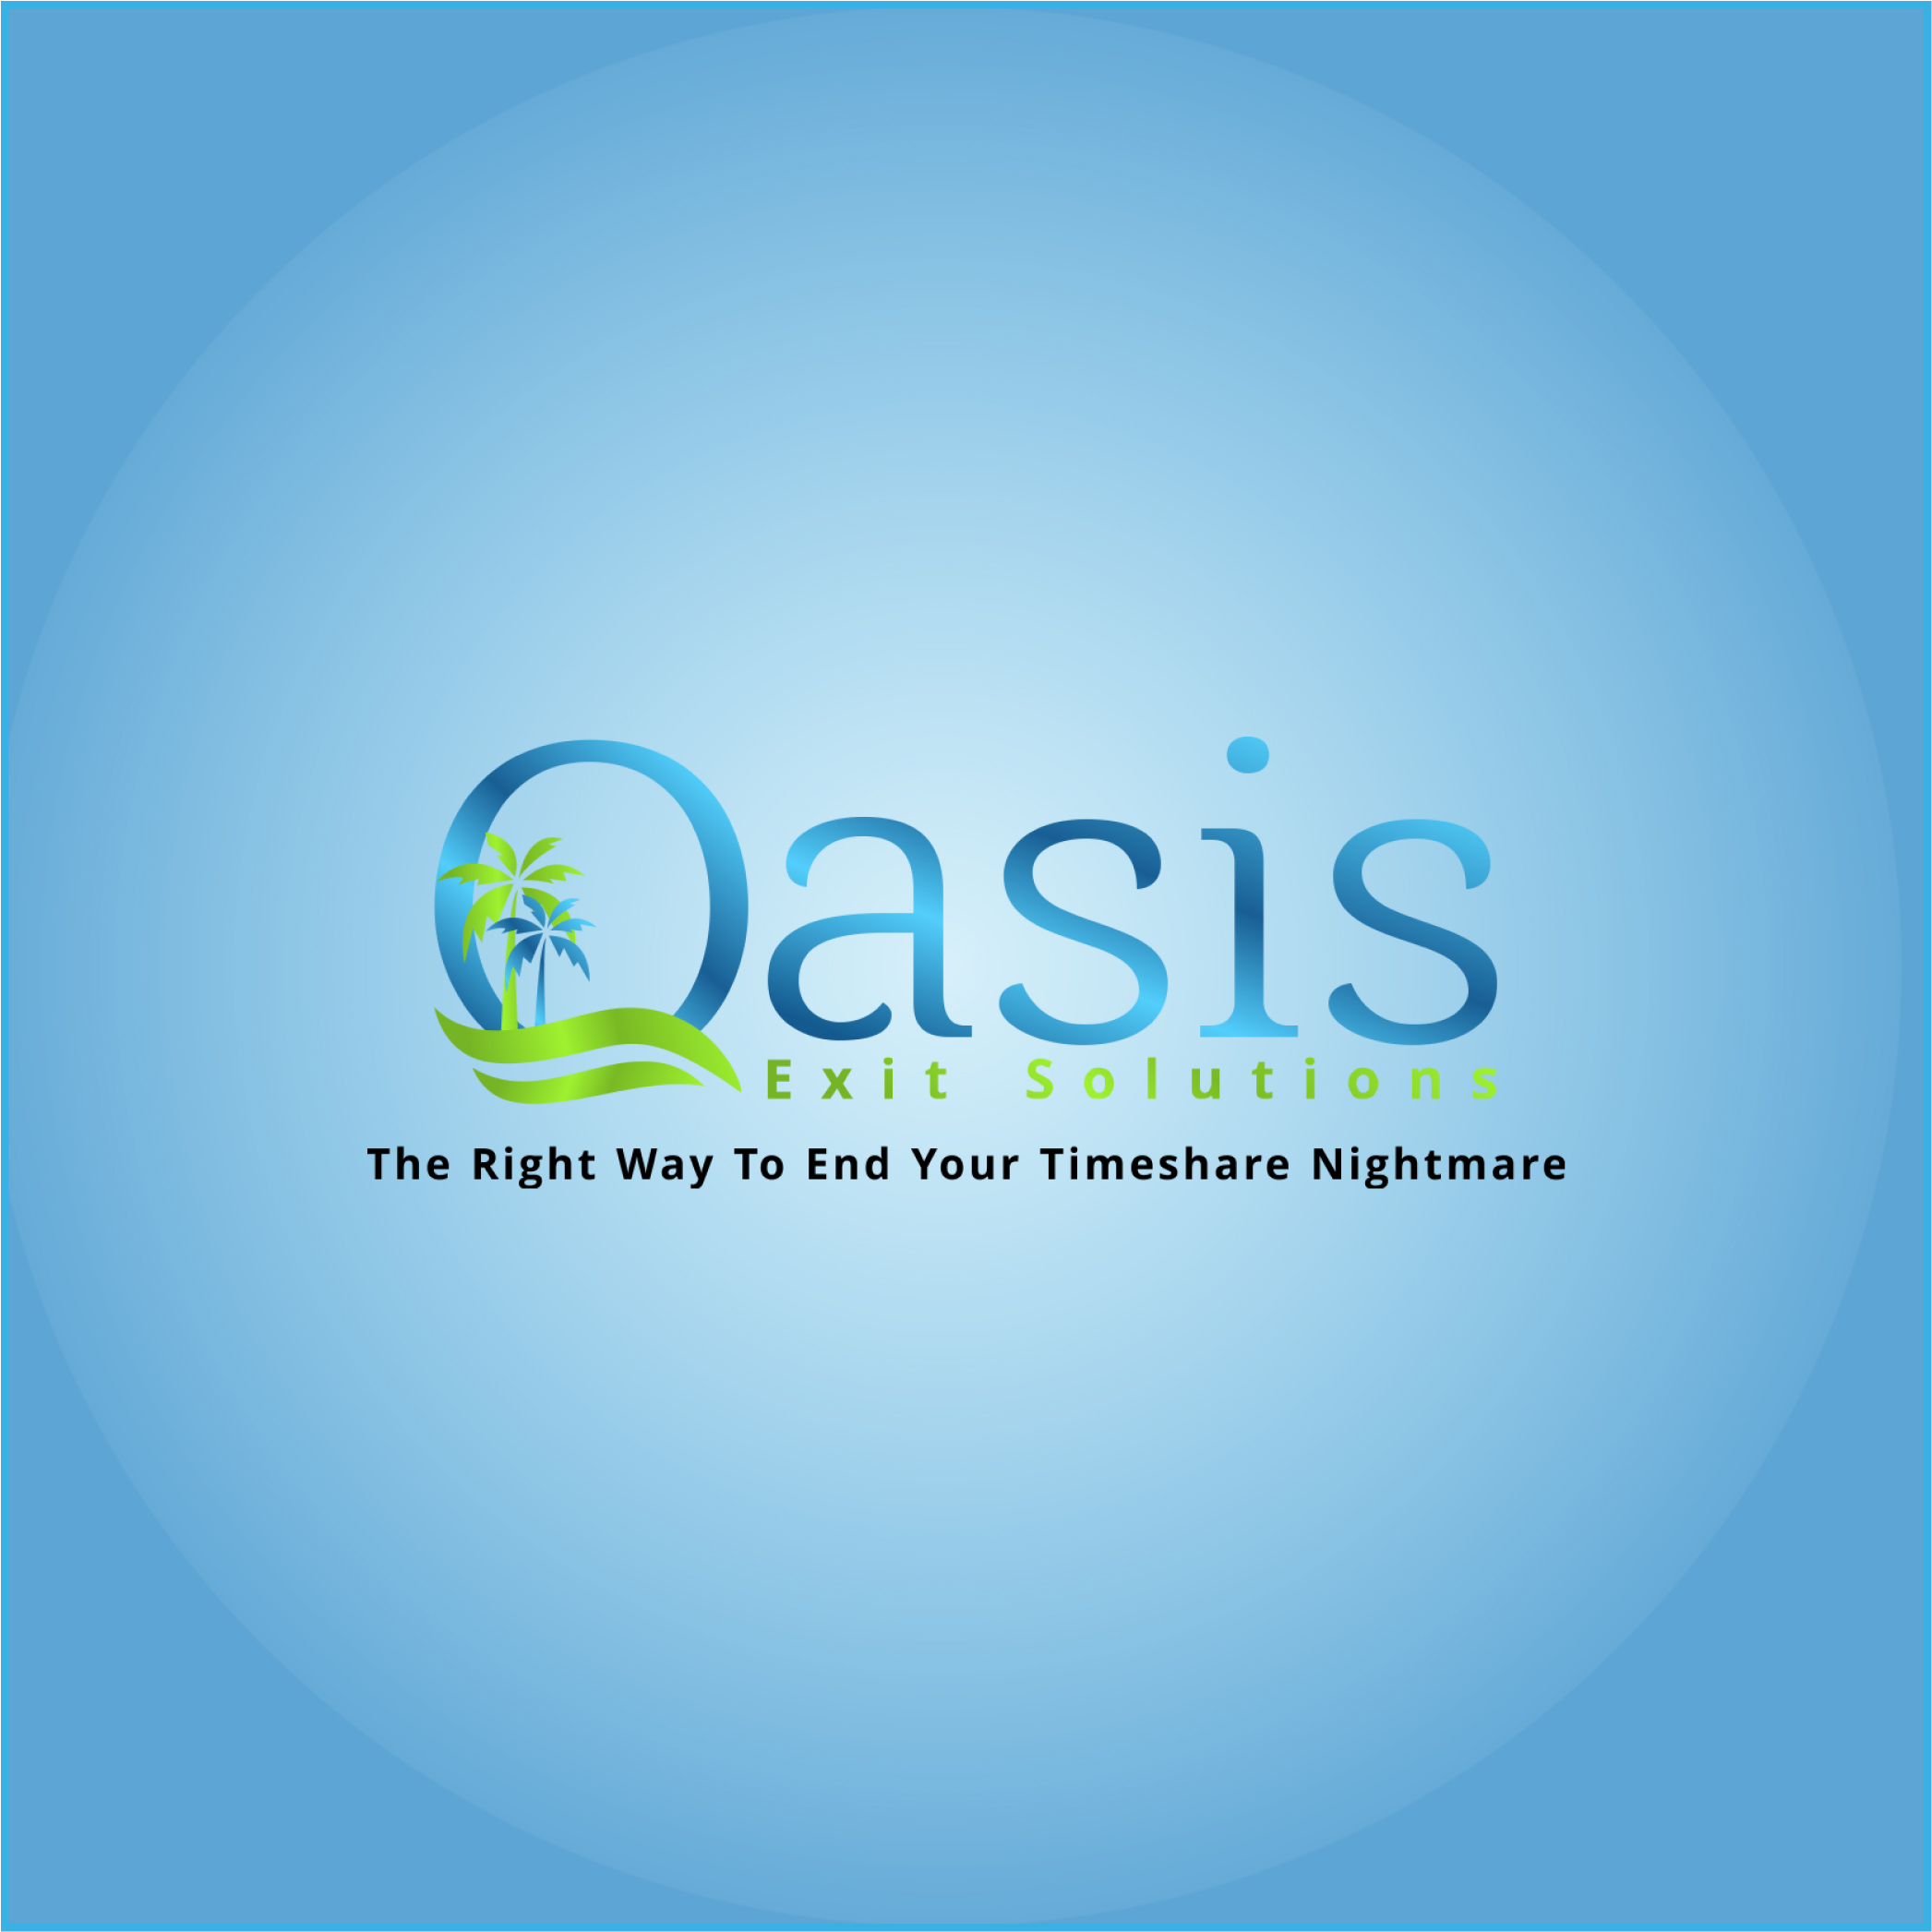 Oasis Exit Solutions